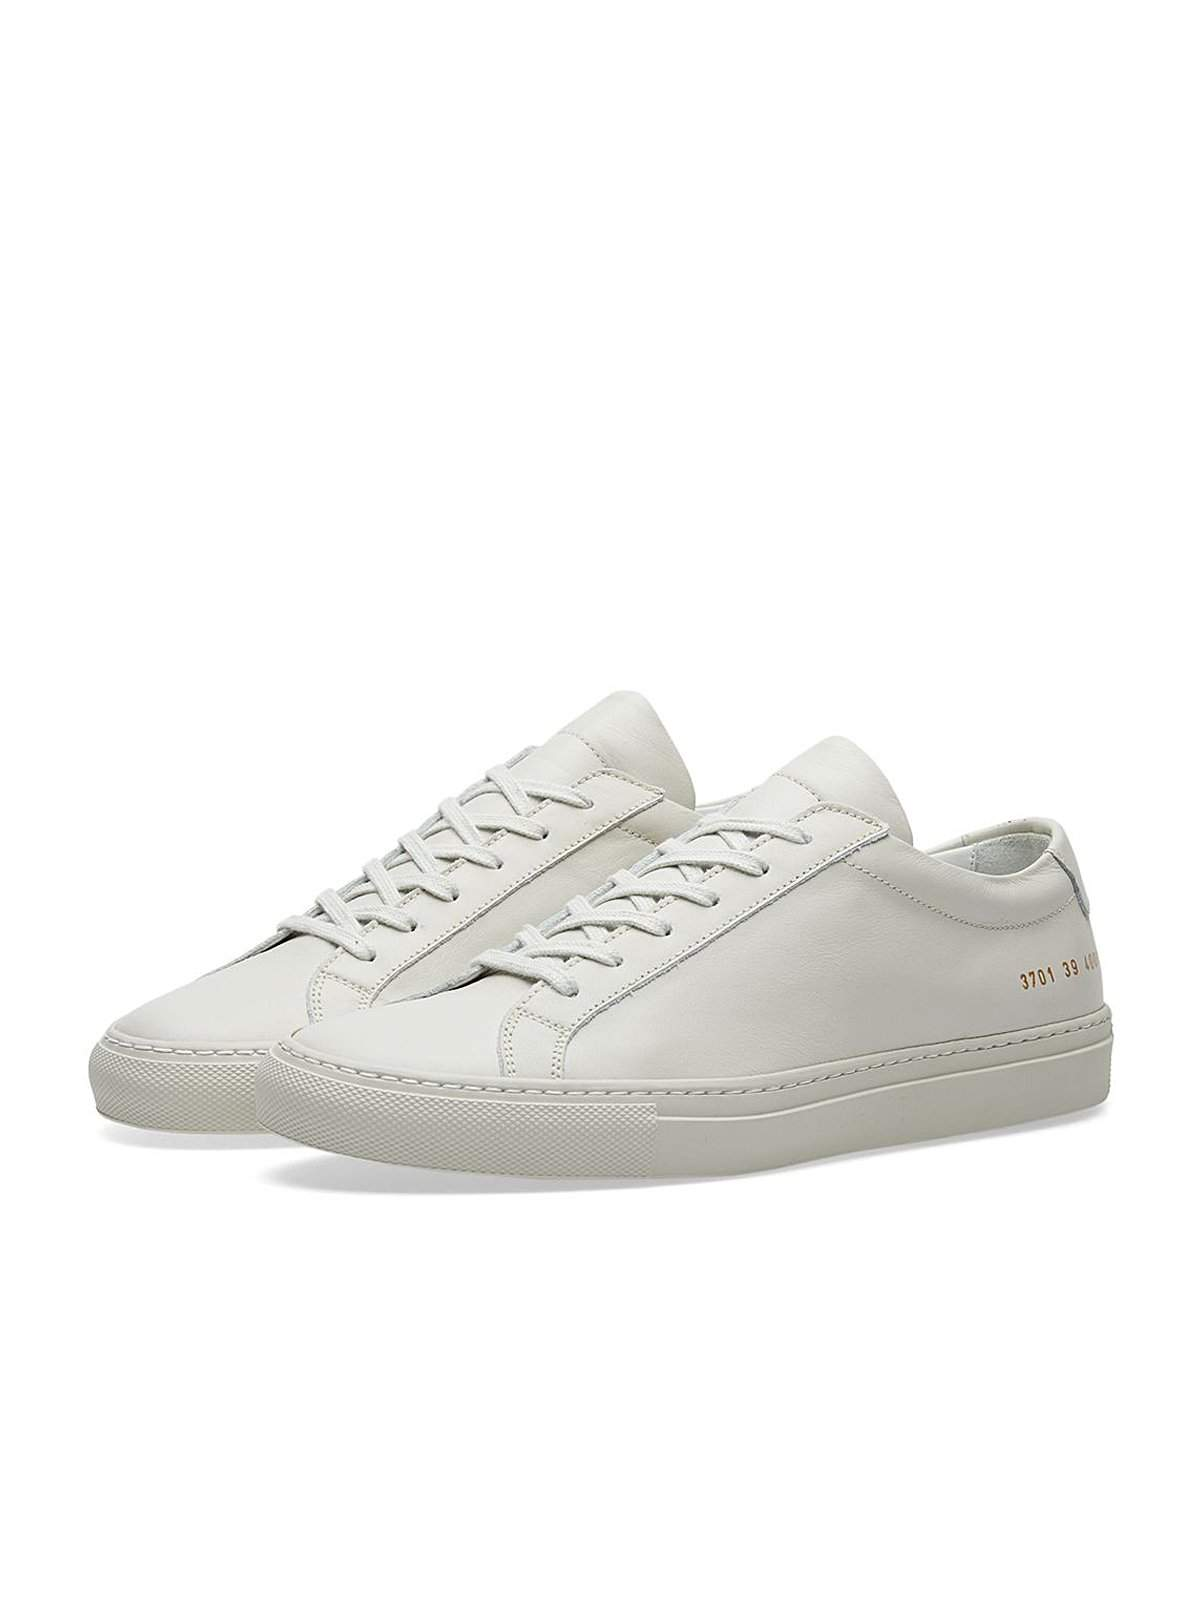 Common Projects Original Achilles Low Off White - MORE by Morello Indonesia